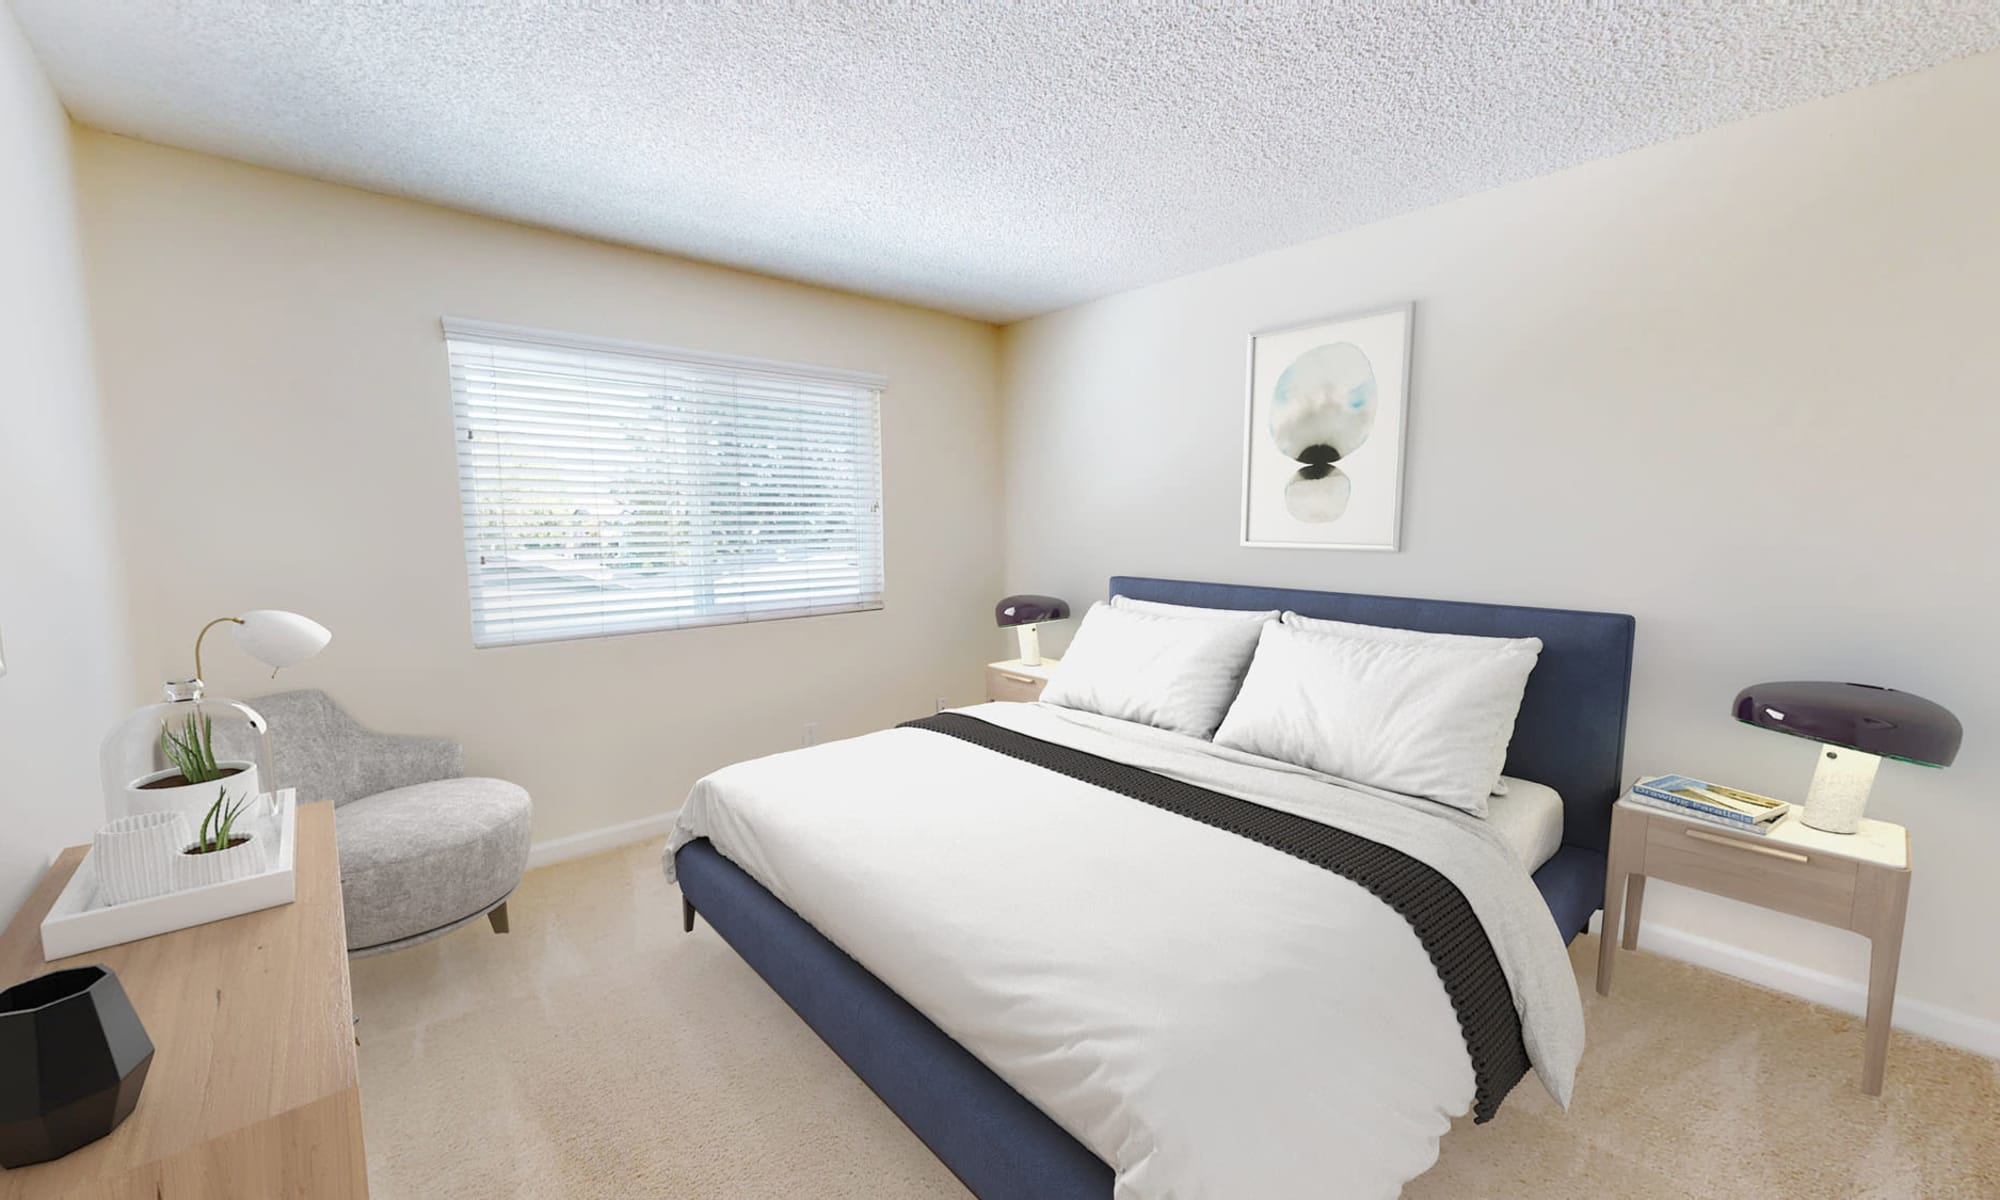 Plush carpeting and a large bay window in a model home's bedroom at Pleasanton Glen Apartment Homes in Pleasanton, California